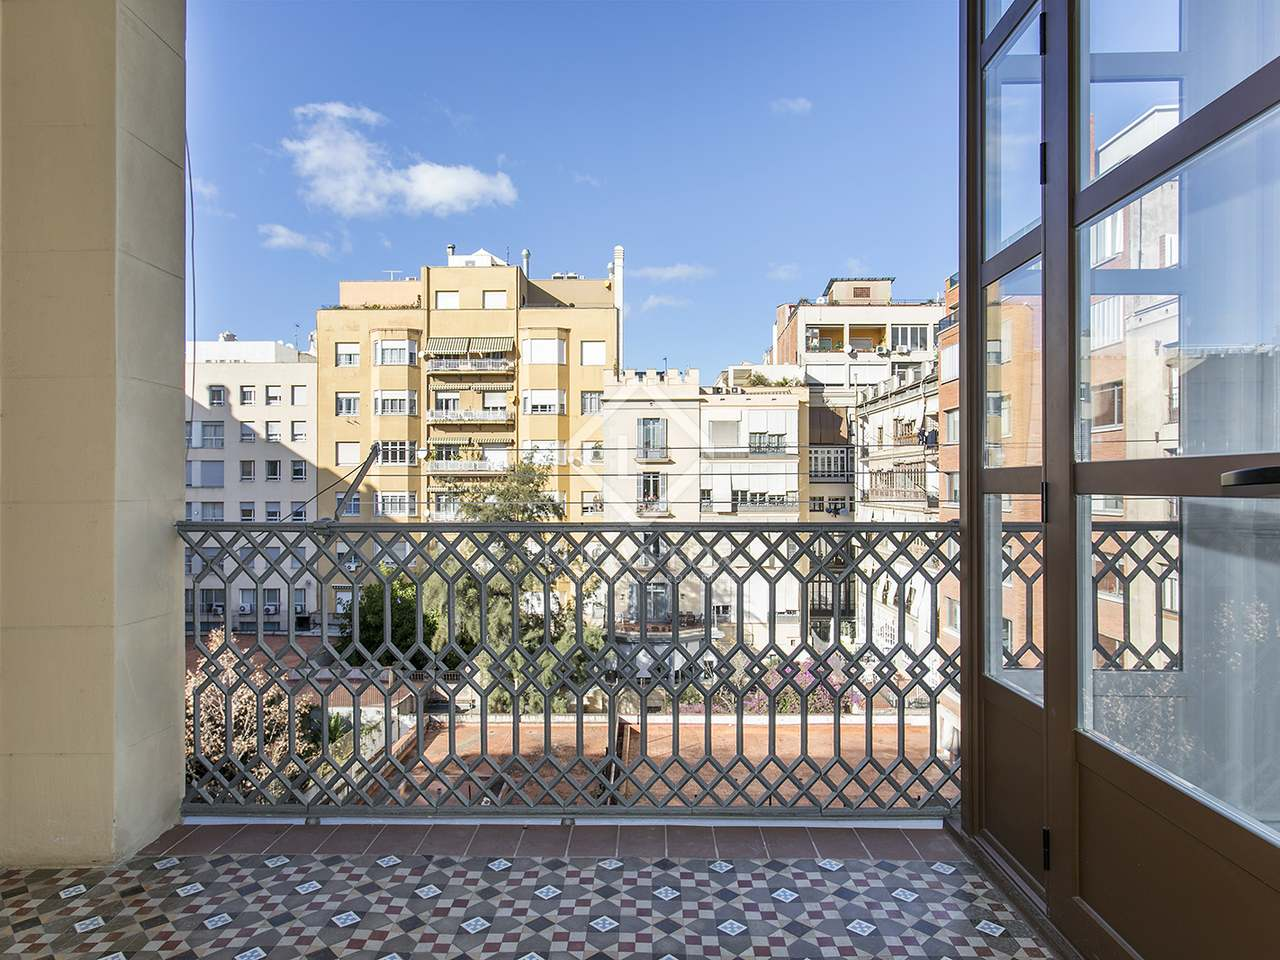 Appartement de 200m a louer eixample droite barcelone for Appartement barcelone piscine